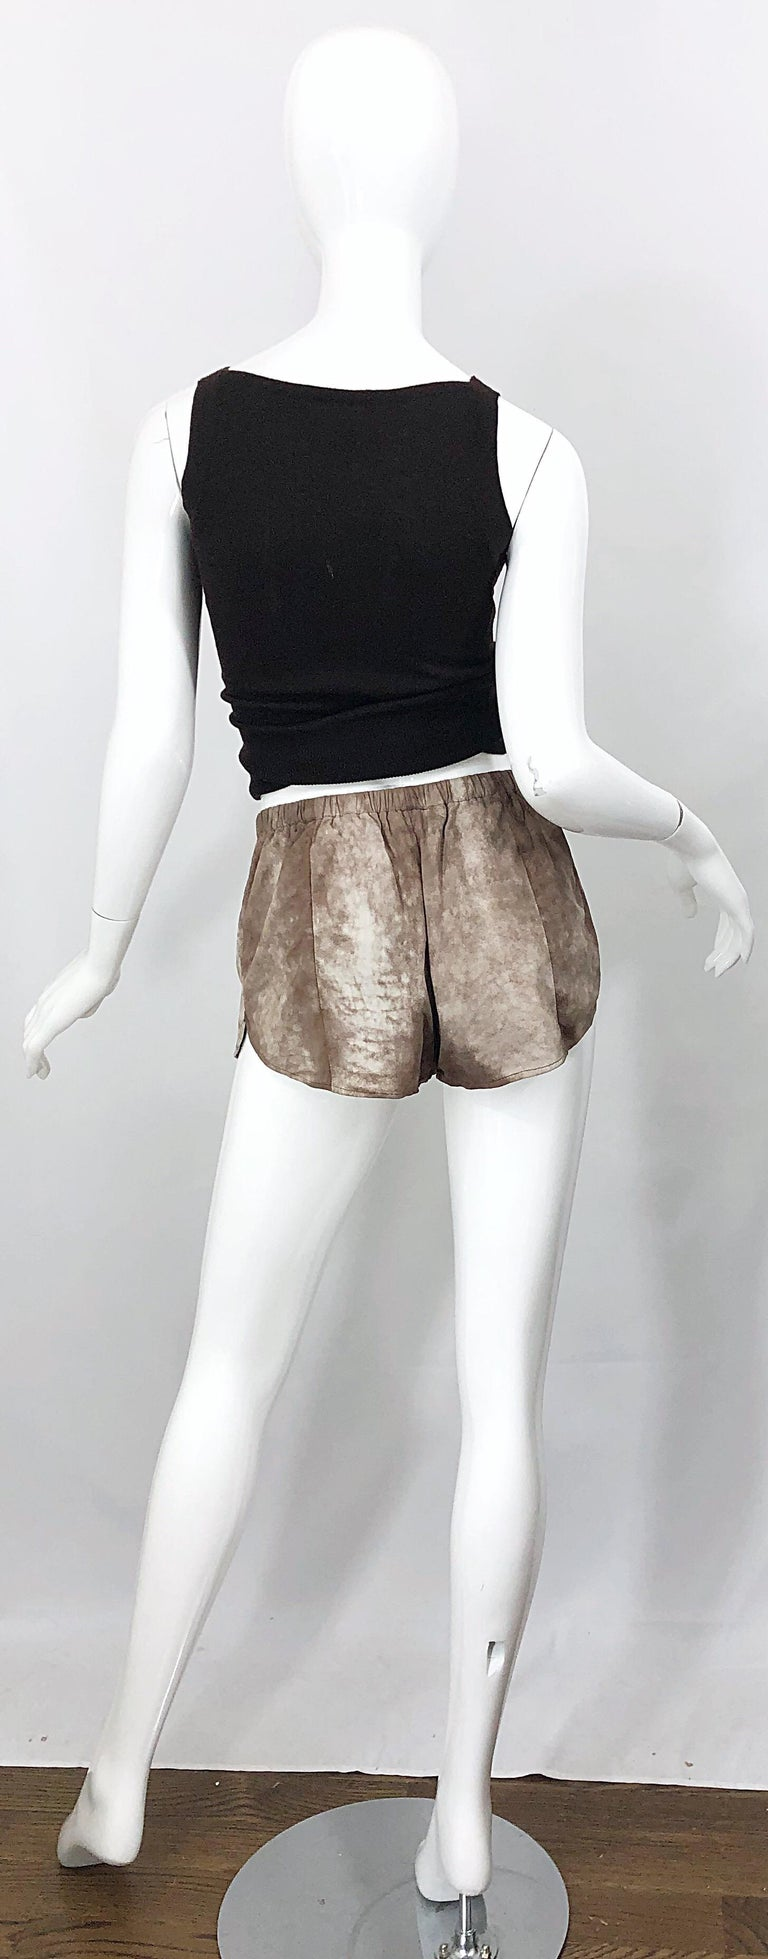 1980s Love, Melody Sabatasso Sheepskin Leather Brown Vintage 80s Hot Pant Shorts In Excellent Condition For Sale In Chicago, IL